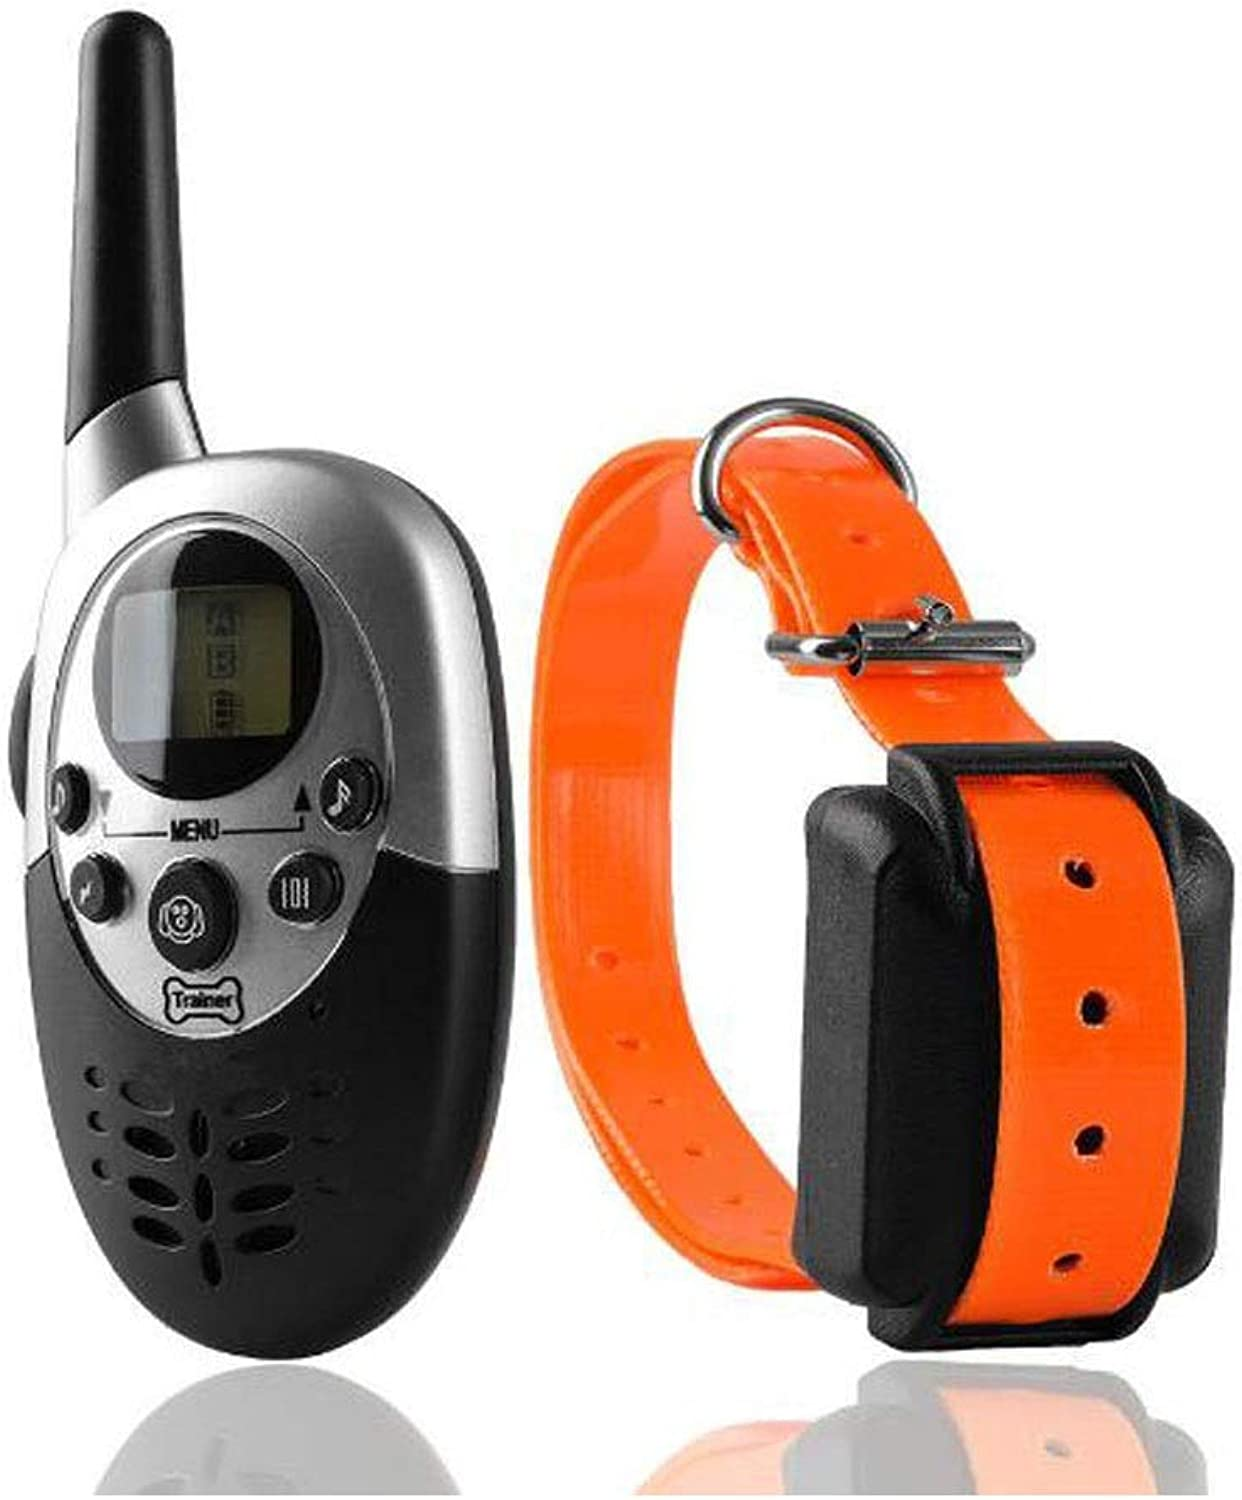 Dog Collar, Dog Training, Explosion Remote Control Snoring Pet Training Collar Charging Waterproof Shock Shock, orange (color   orange, Size   18  14.5  4.5cm)